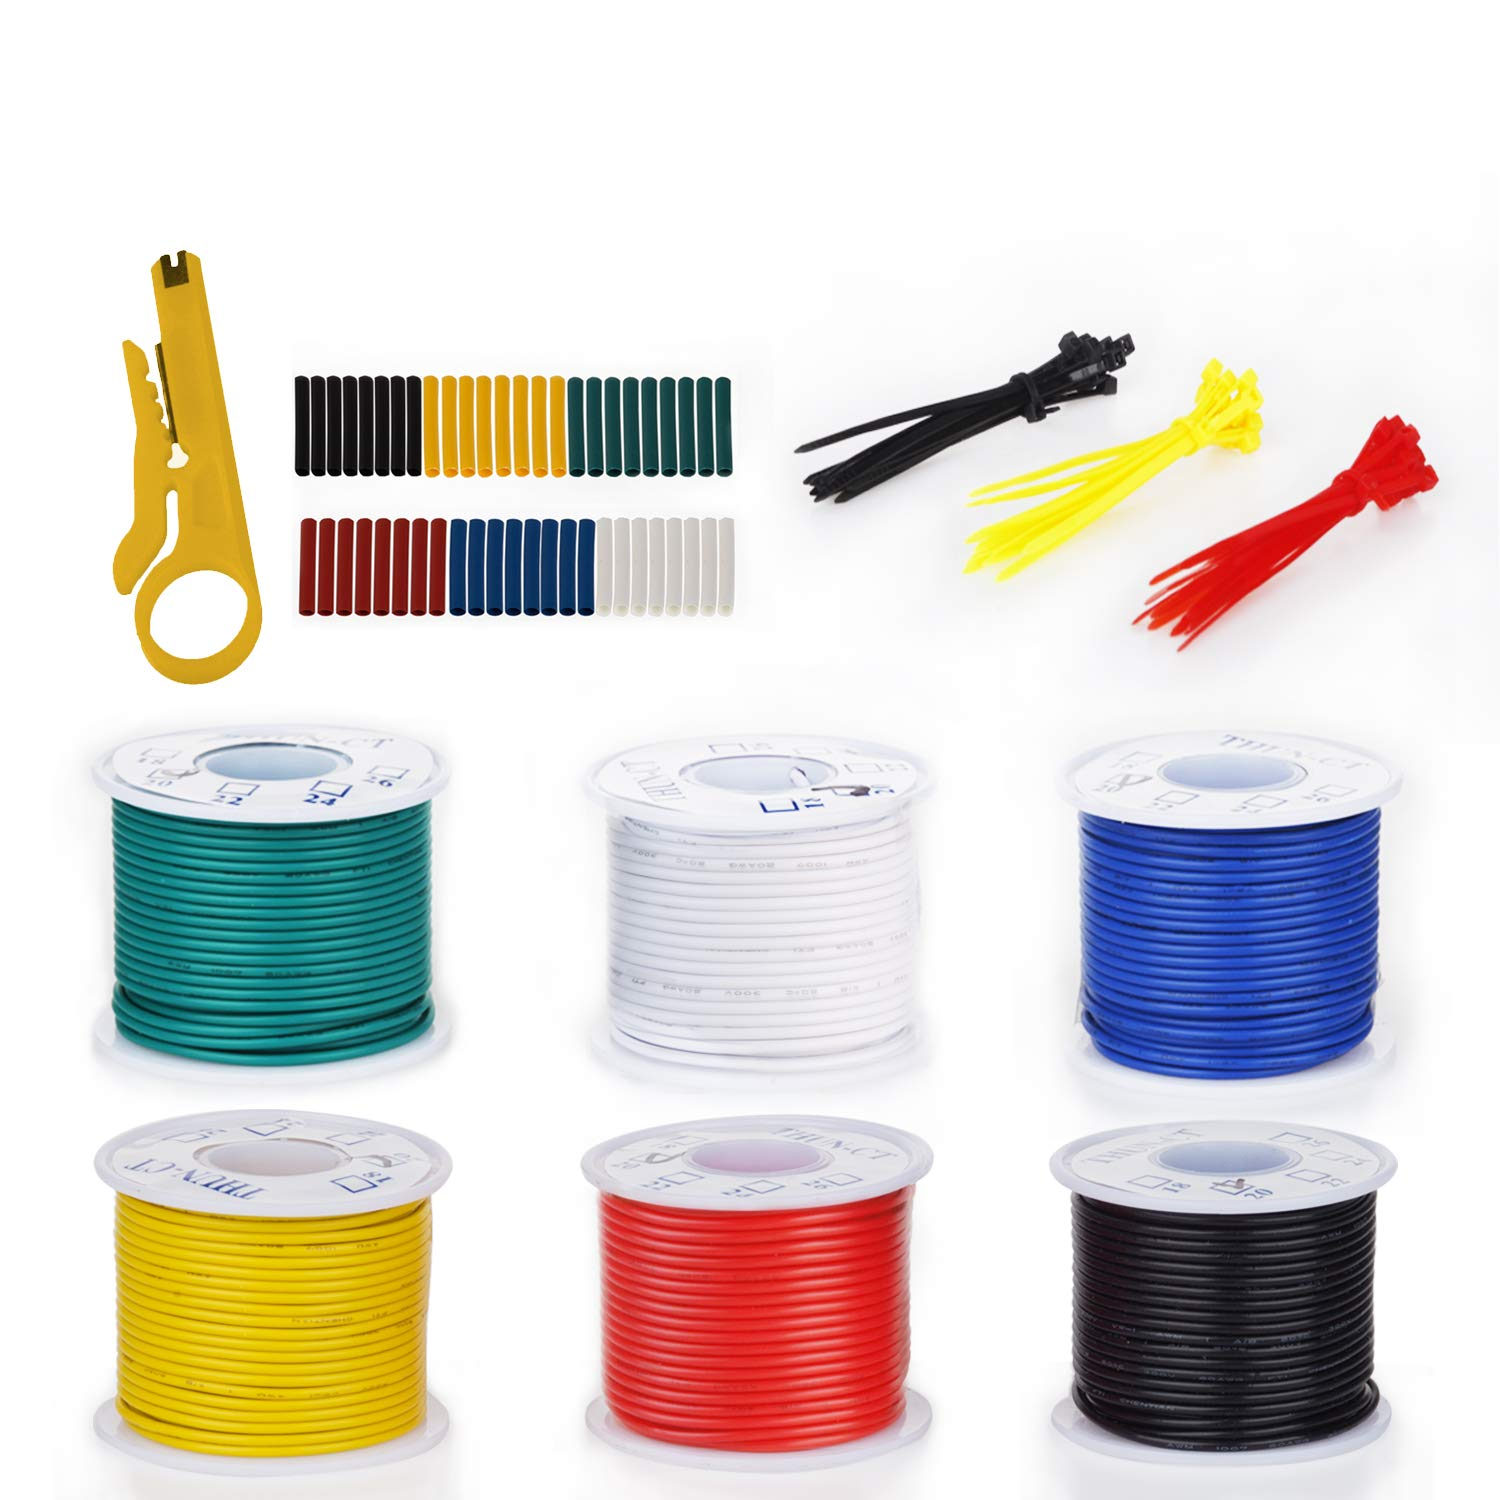 THUN-CT 18 AWG Electronic Solid Wire Kit Tinned Copper Wire Insulated Solid Wires- 18 Gauge Stranded Hook Up Wires Kit 9.2M//30ft